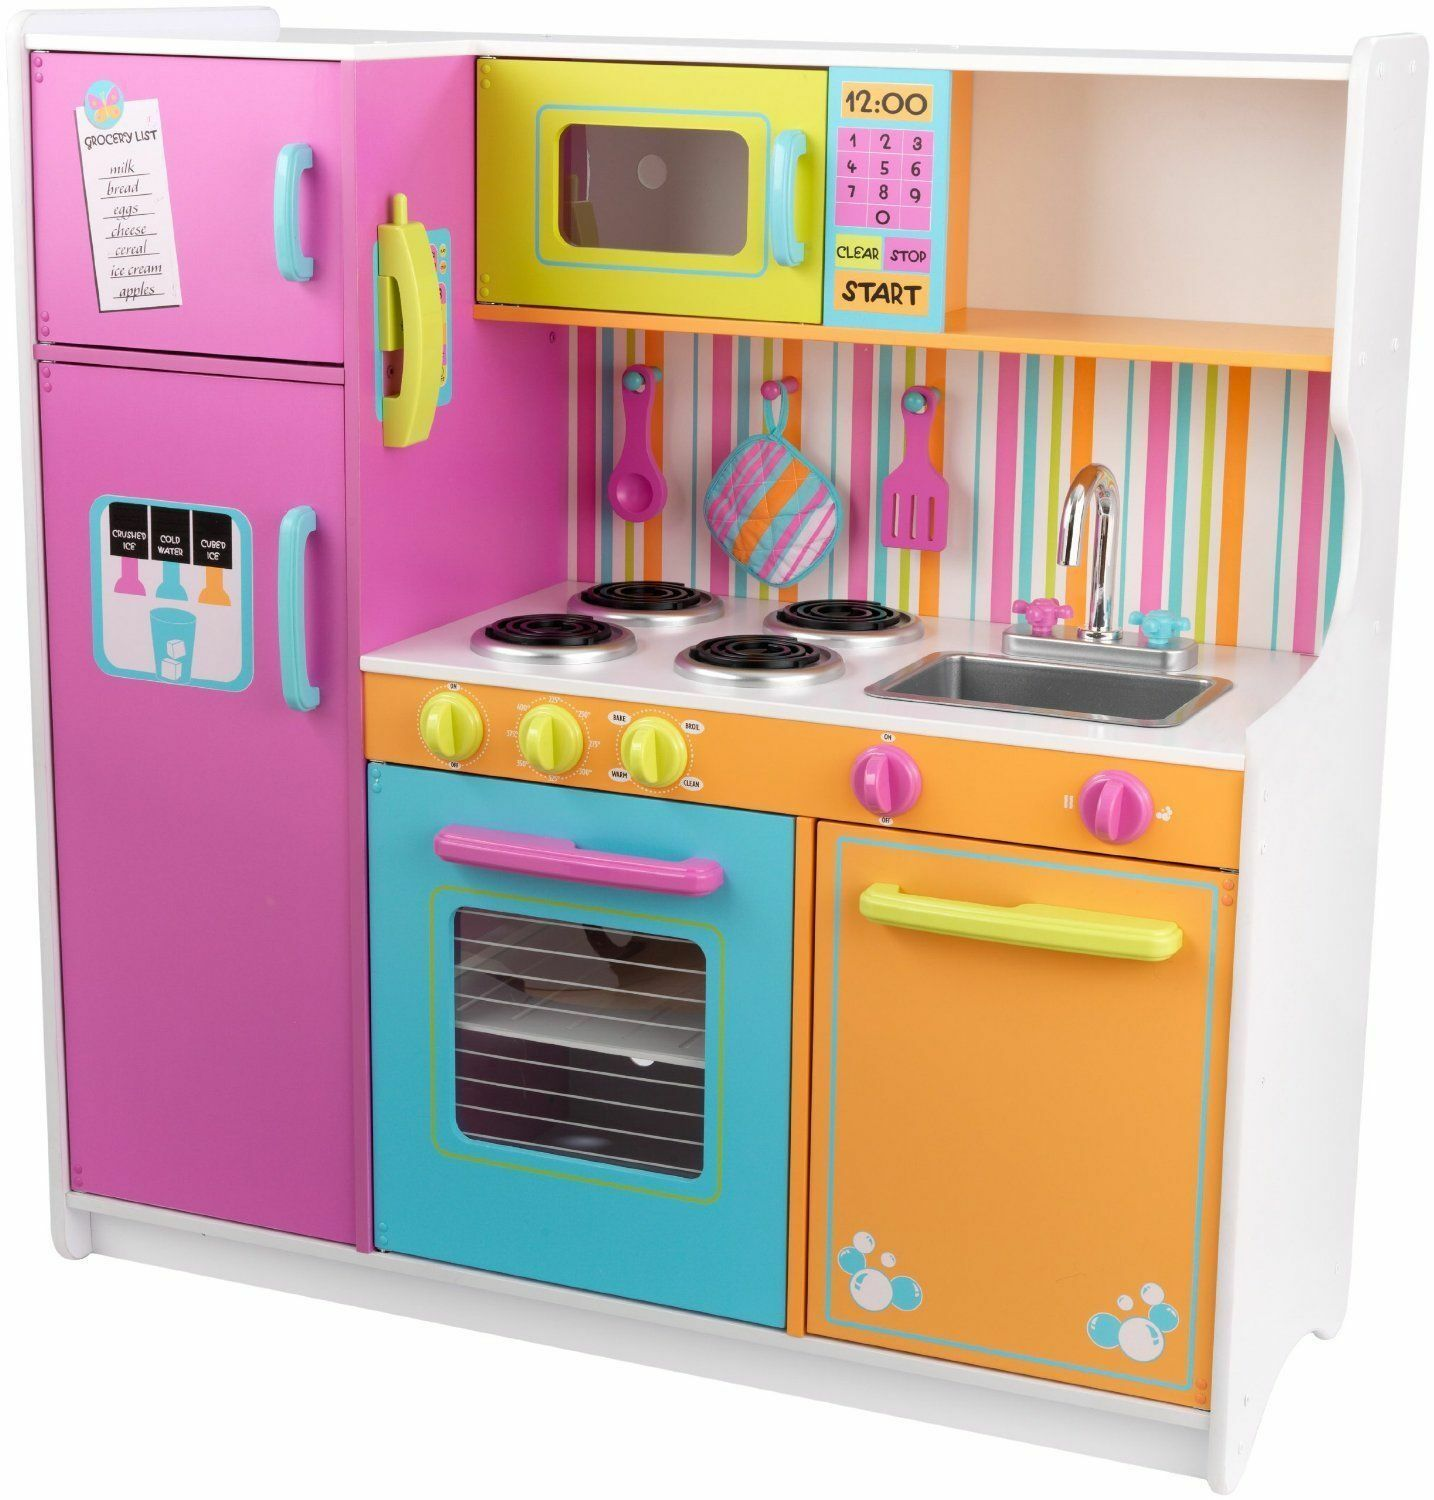 Kids Play Kitchen Wood: Top-10-Wooden-Kitchens-for-Kids